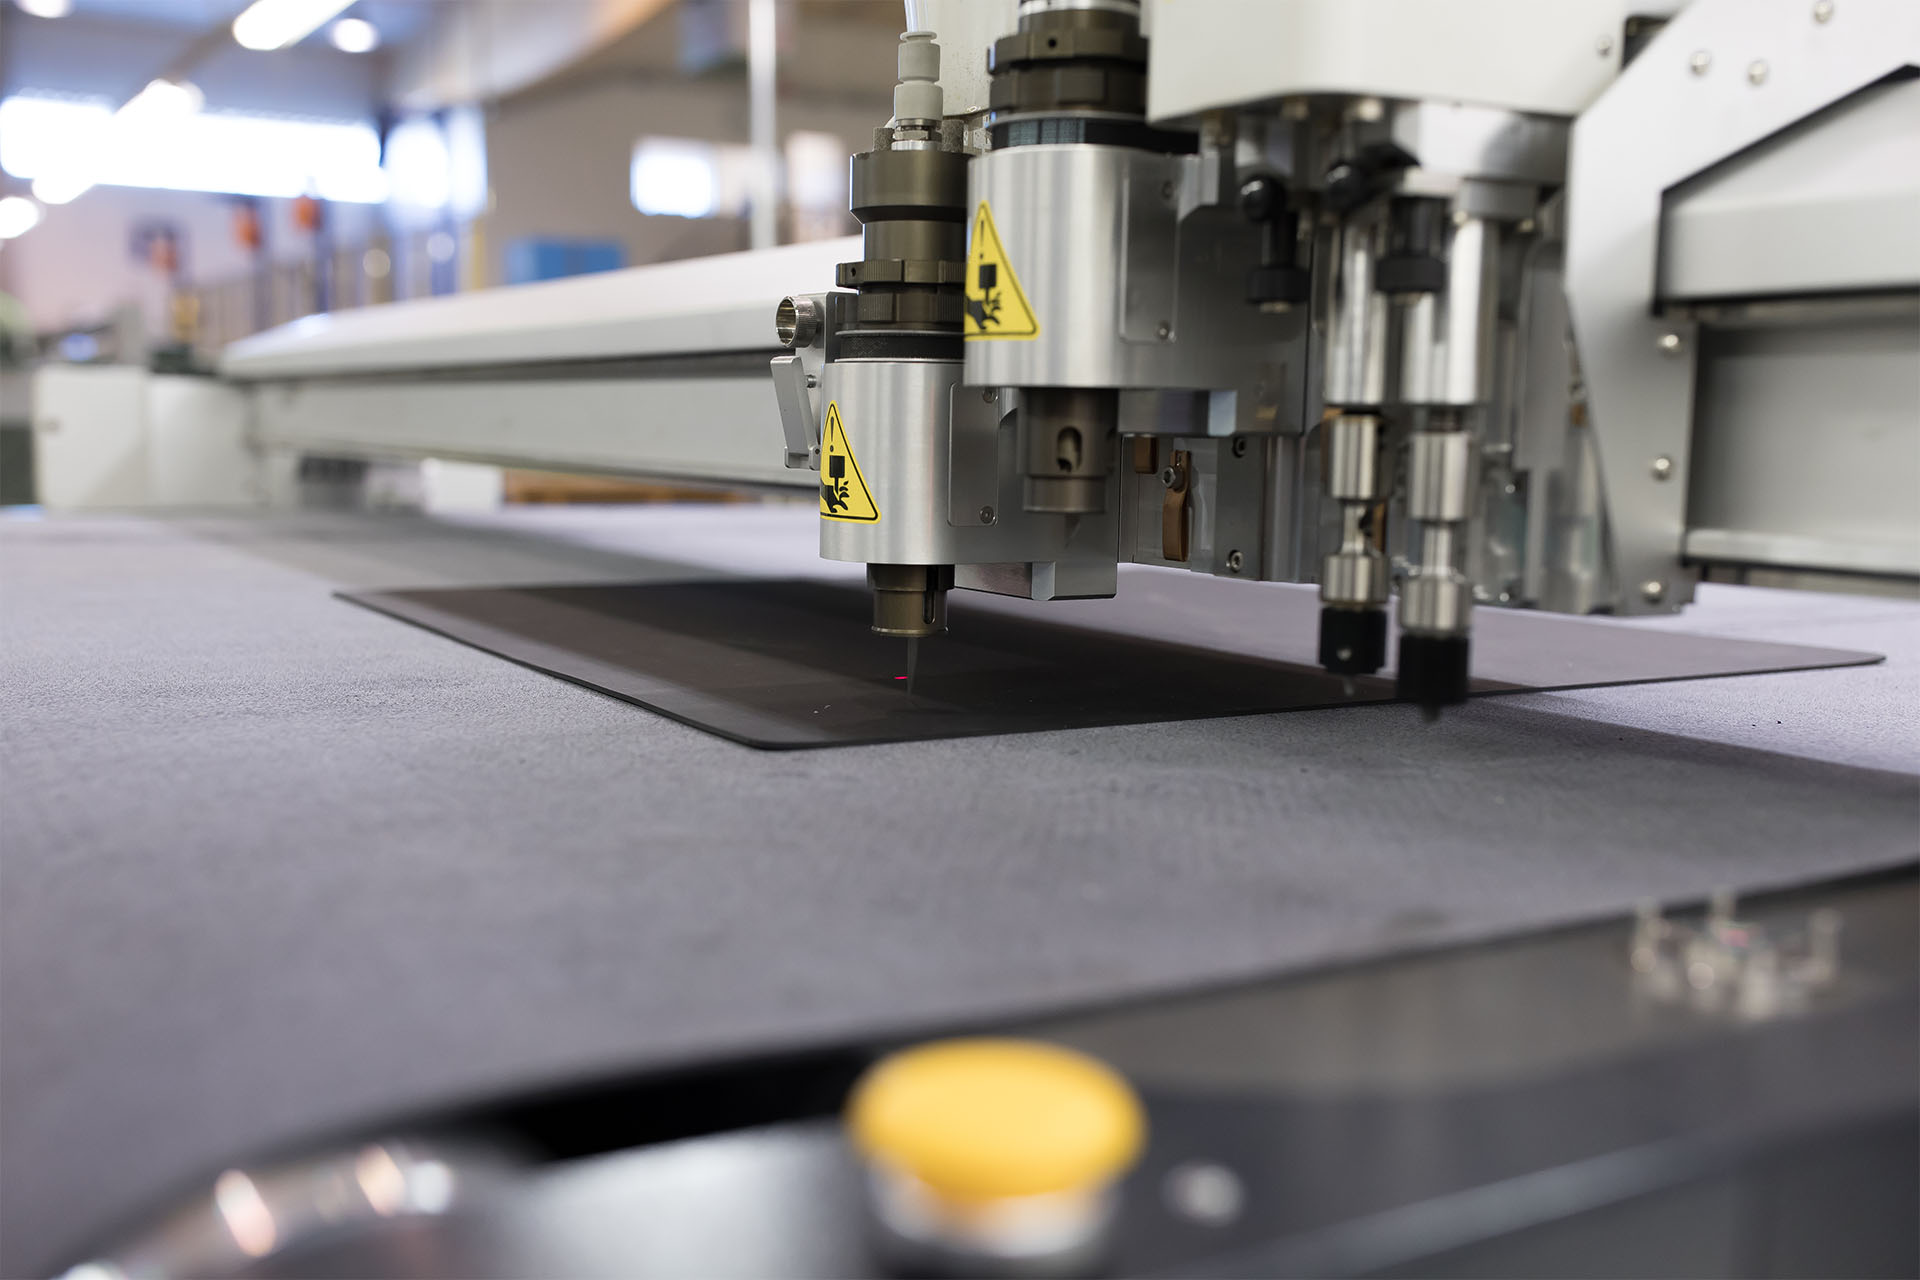 Our New Cutting System Cuts Sealing and Insulating Materials Fast and with High Precision!